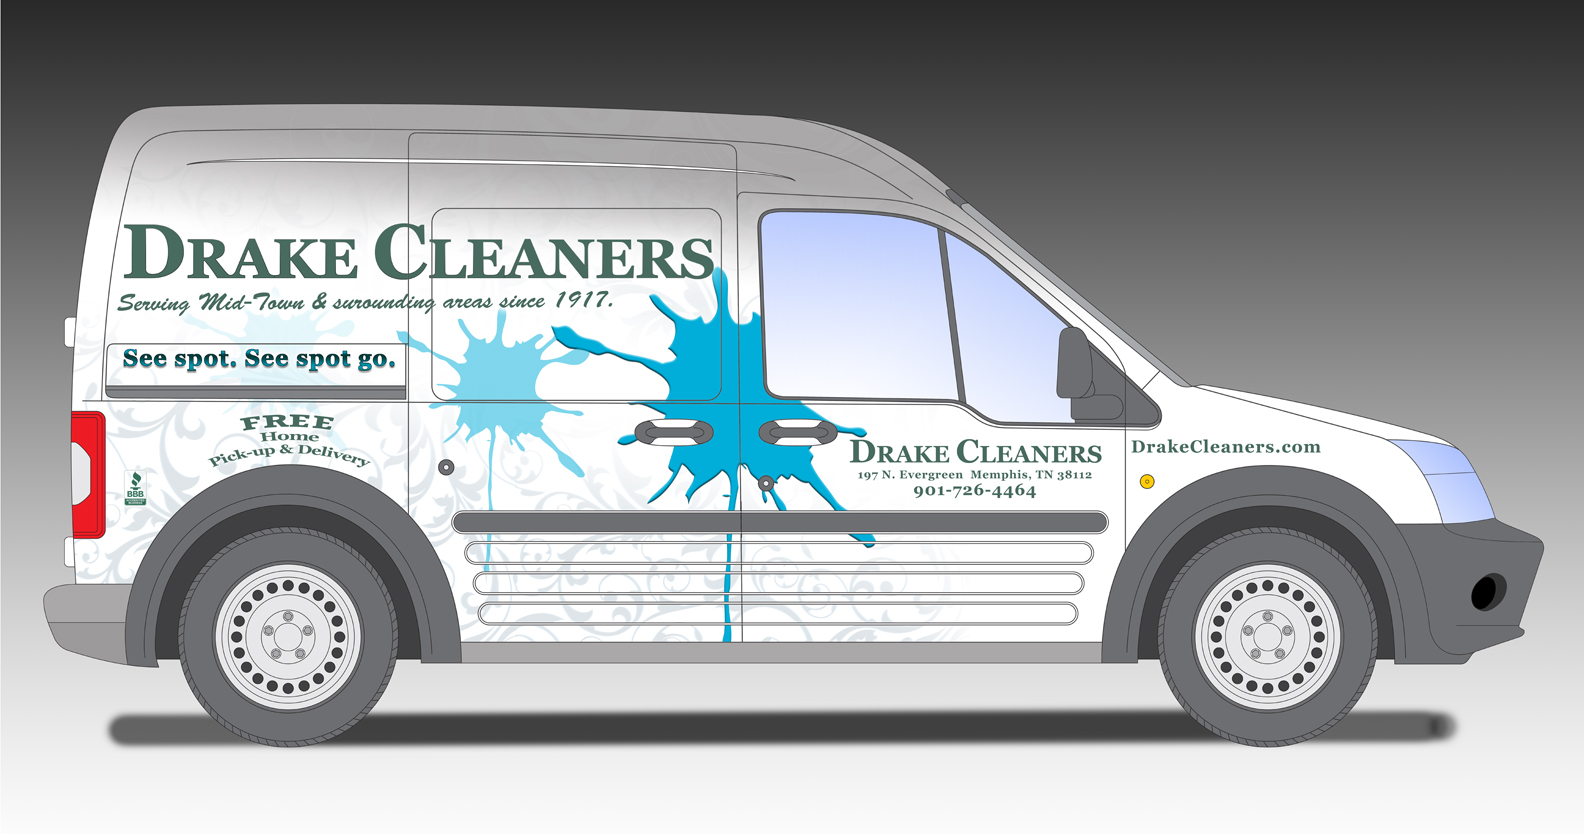 We pickup and deliver twice a week to your home or business.